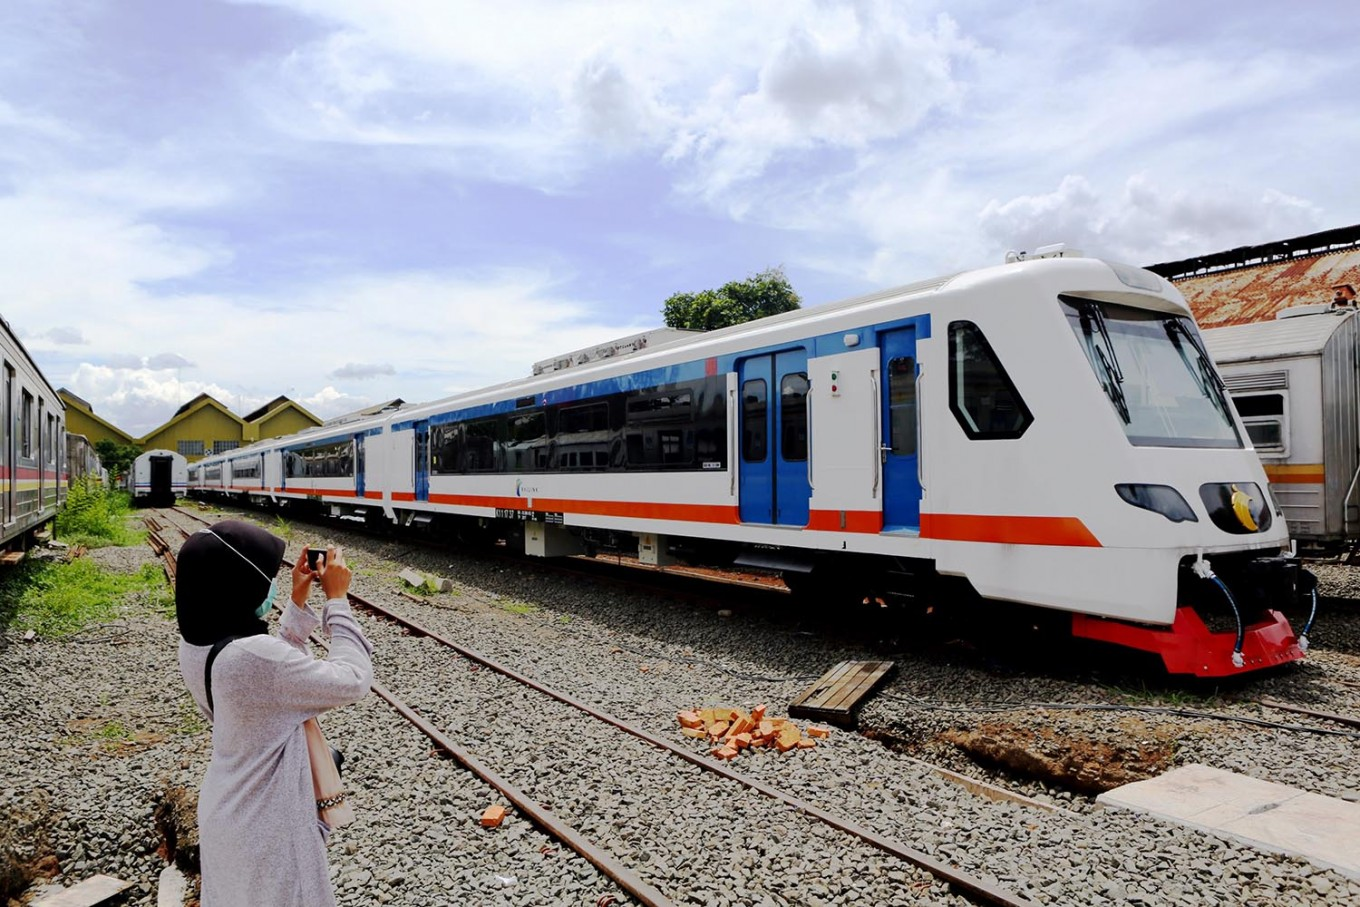 Jokowi launches Soekarno-Hatta airport train